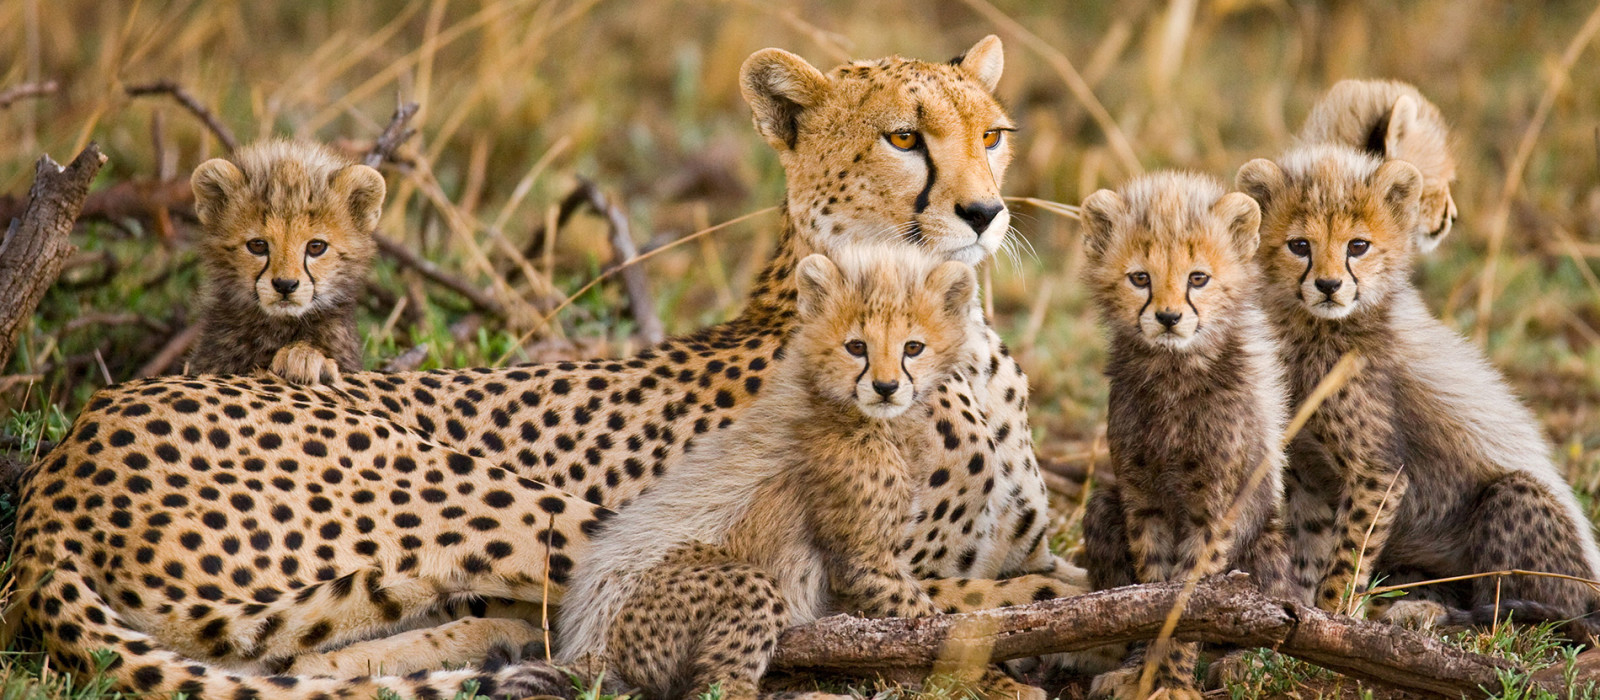 Cheetah family in the African Savannah